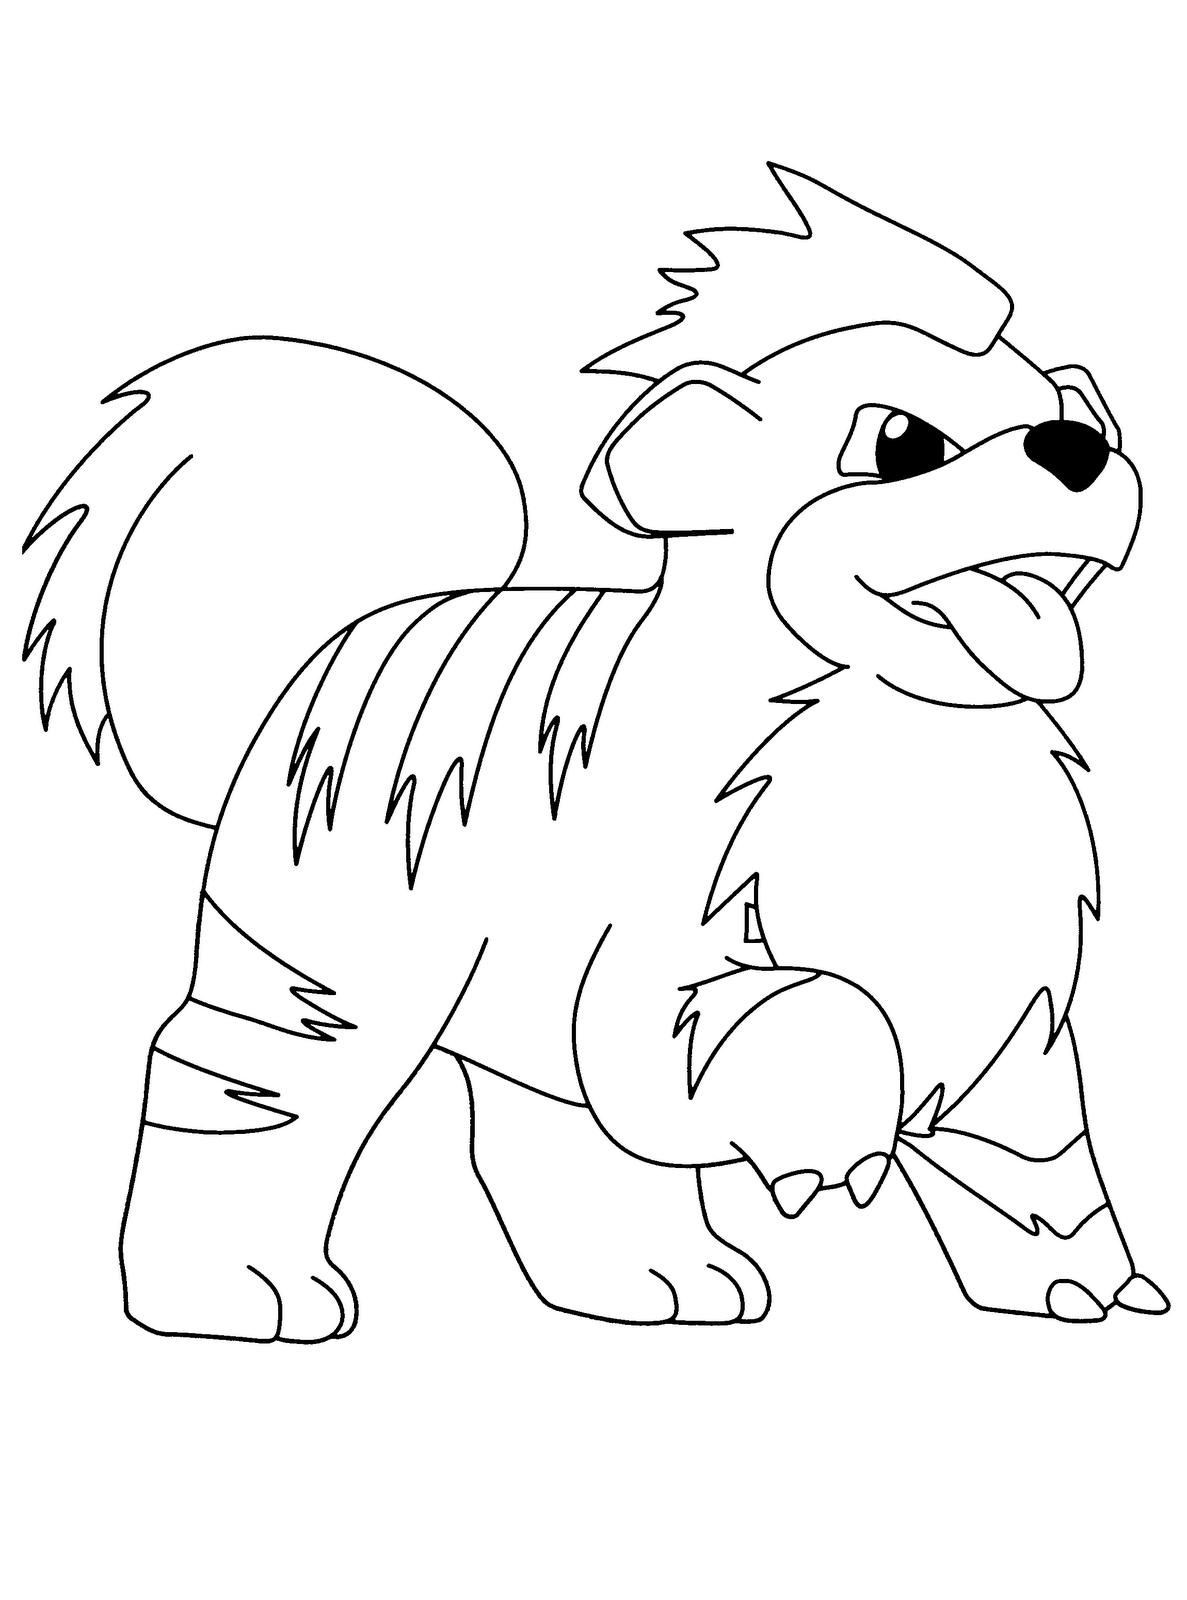 Pin By Rita Torres On Coloring Pages Pokemon Coloring Pages Pokemon Coloring Sheets Pokemon Coloring